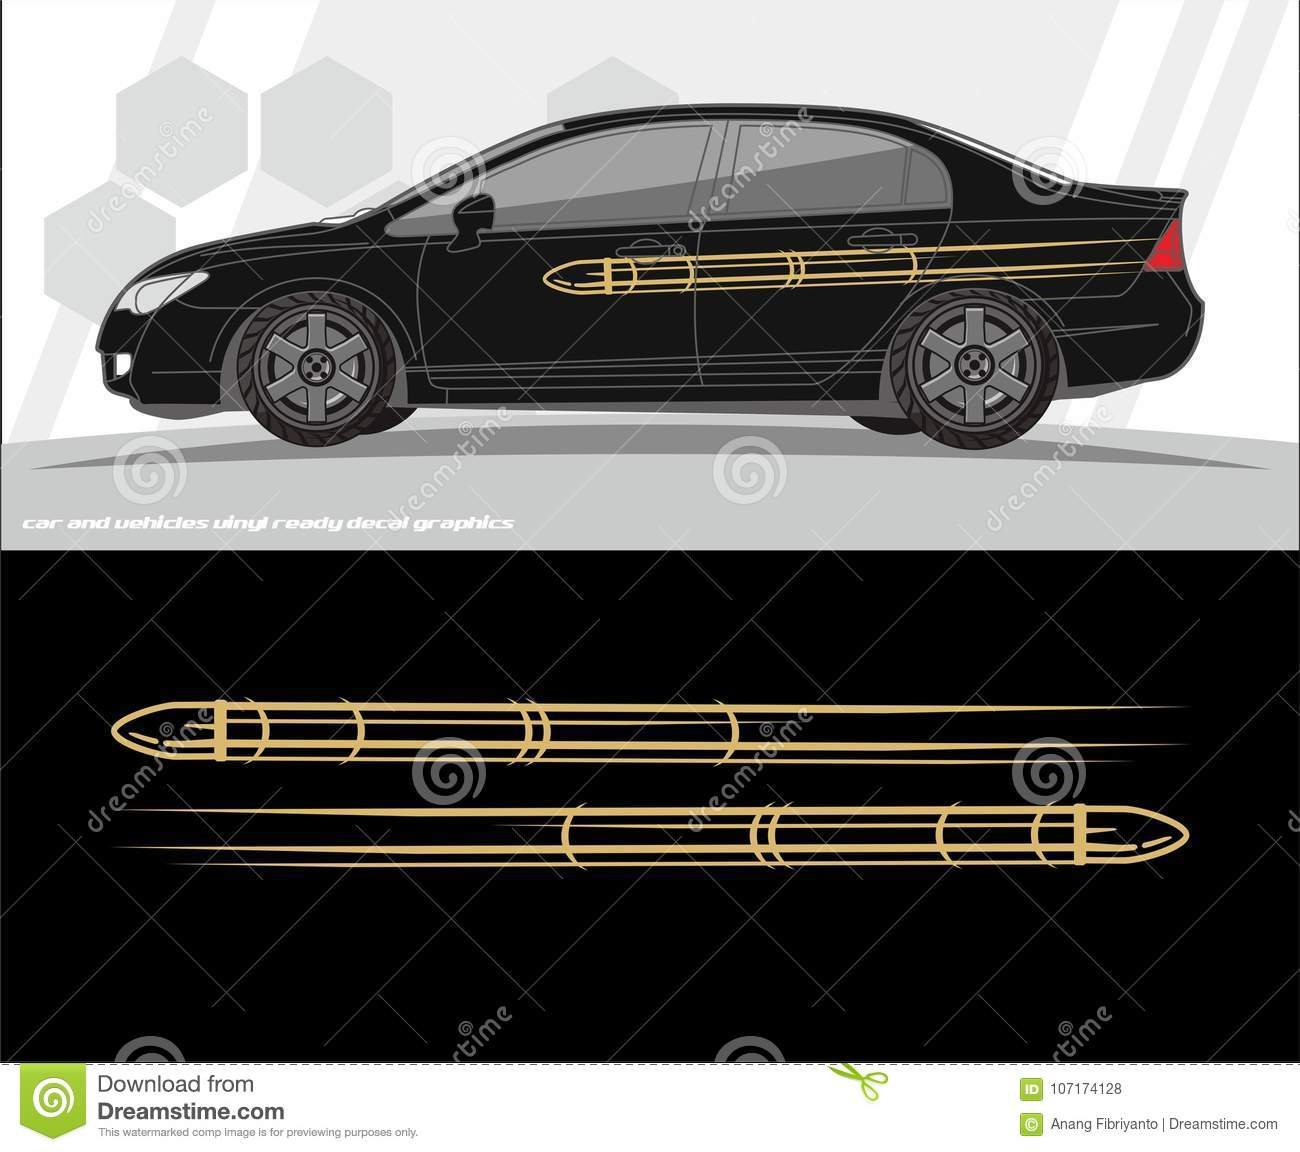 Car and vehicles decal graphics kit designs ready to print and cut